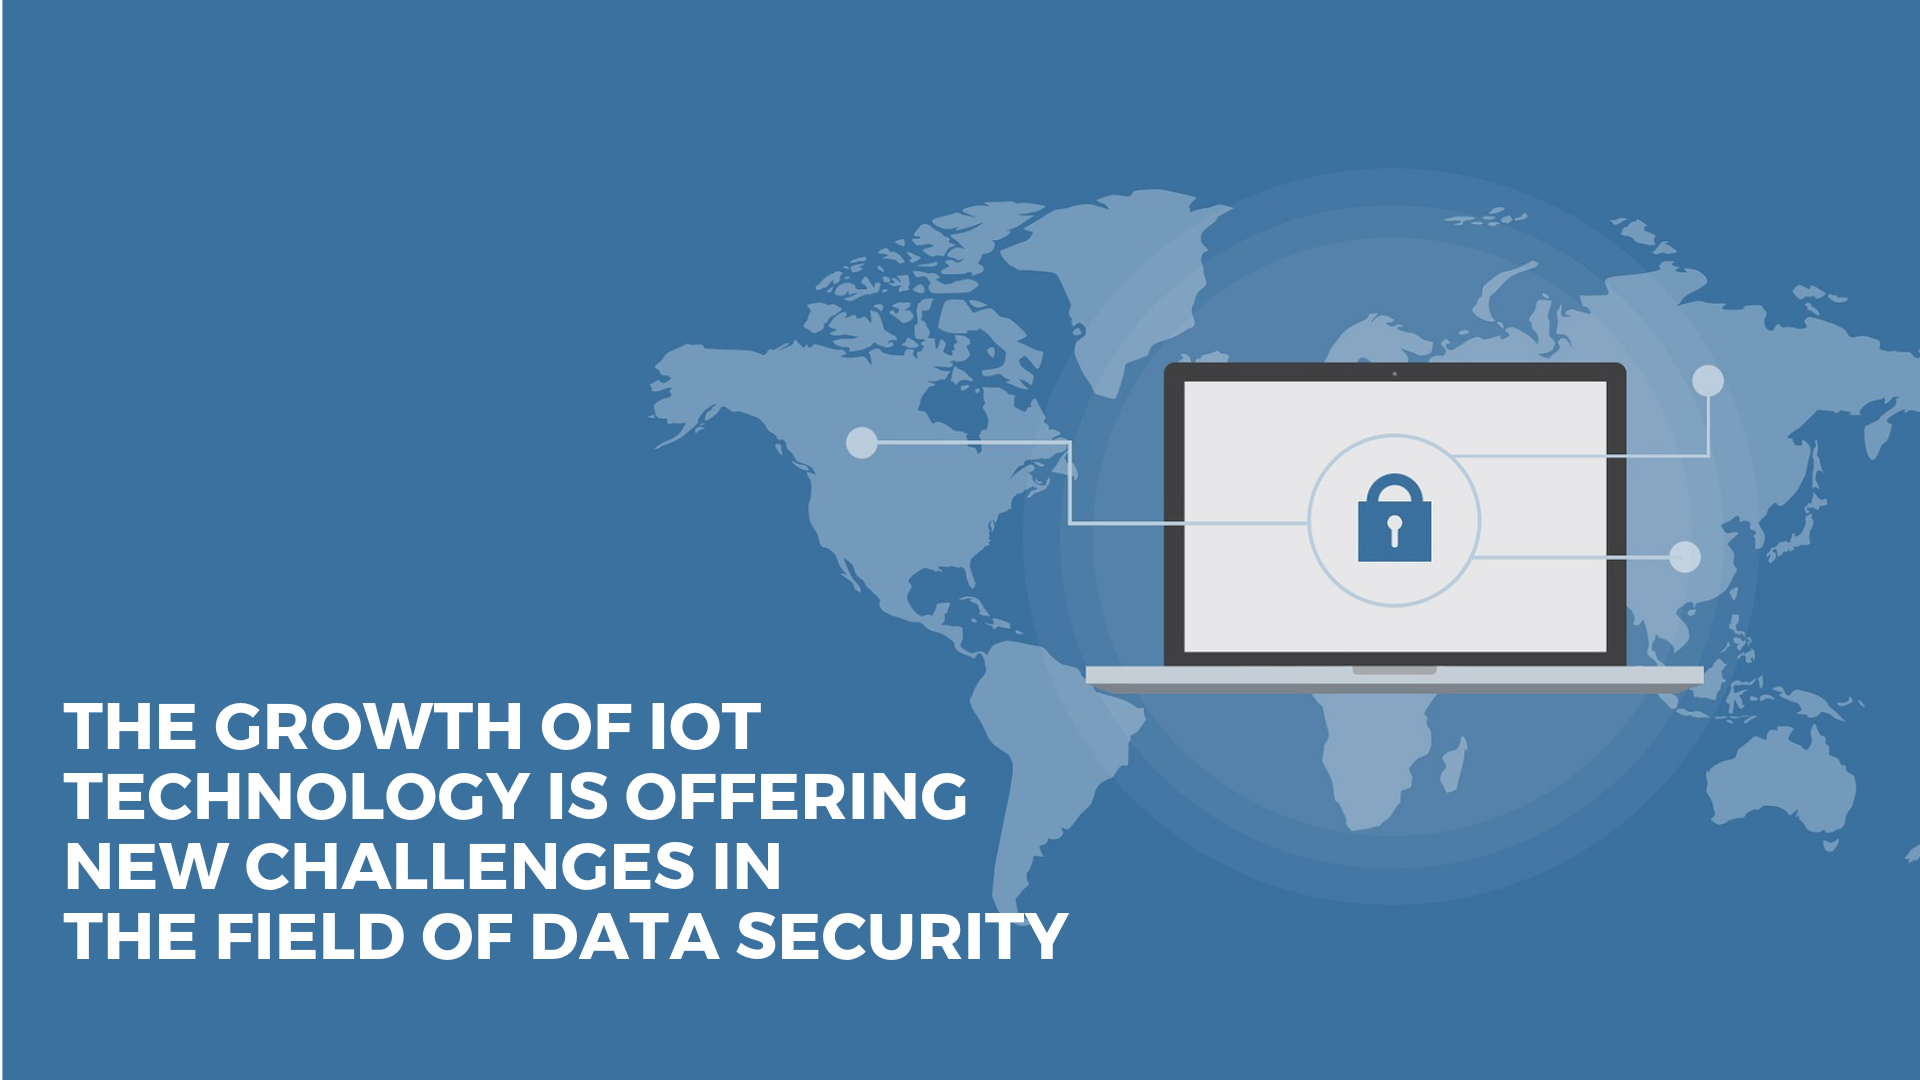 IoT application development and Data Security